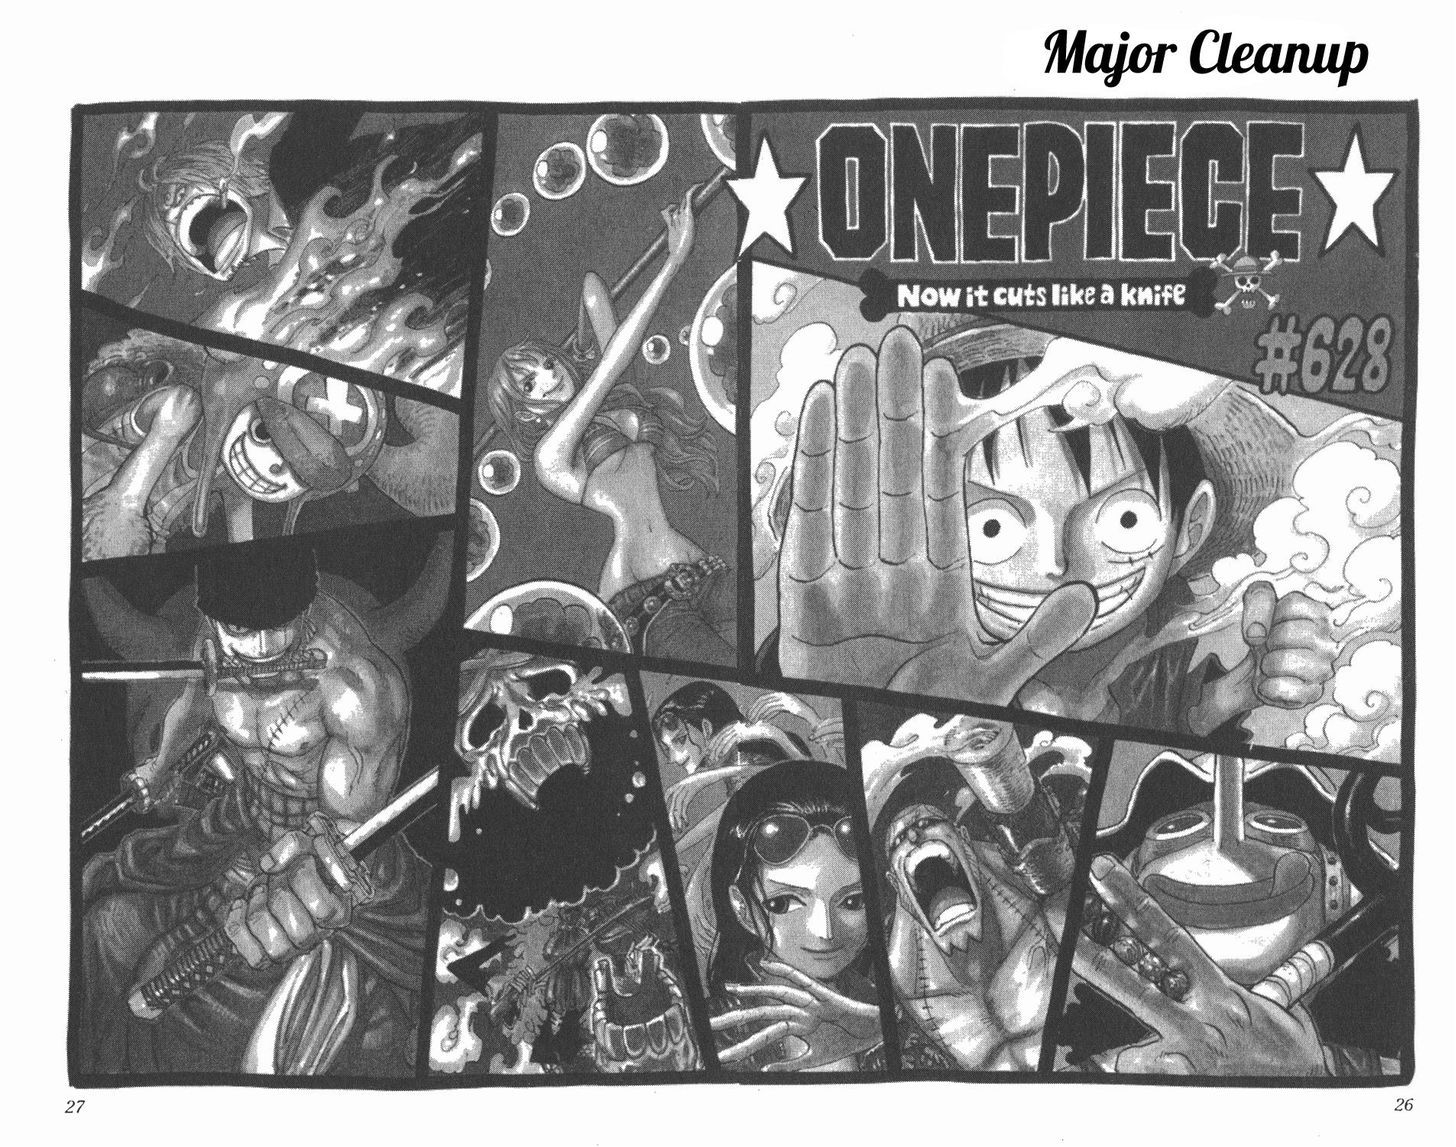 https://im.nineanime.com/comics/pic9/32/96/2977/OnePiece6280720.jpg Page 1